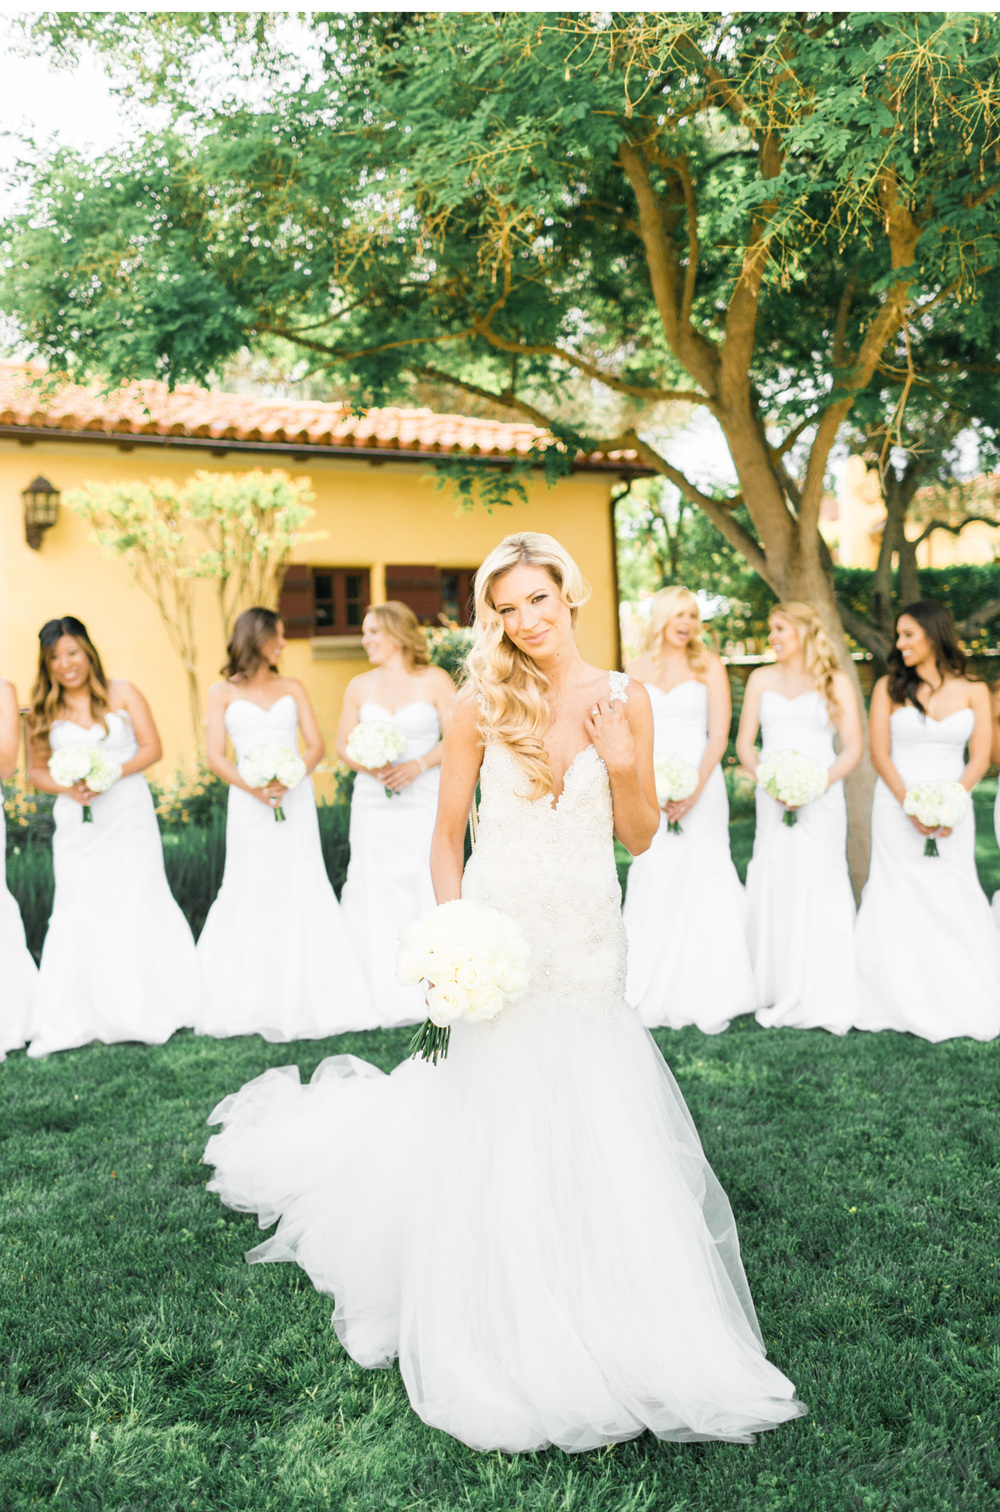 Santa-Barbara-Wedding-Photographer-Natalie-Schutt-Photography_01.jpg